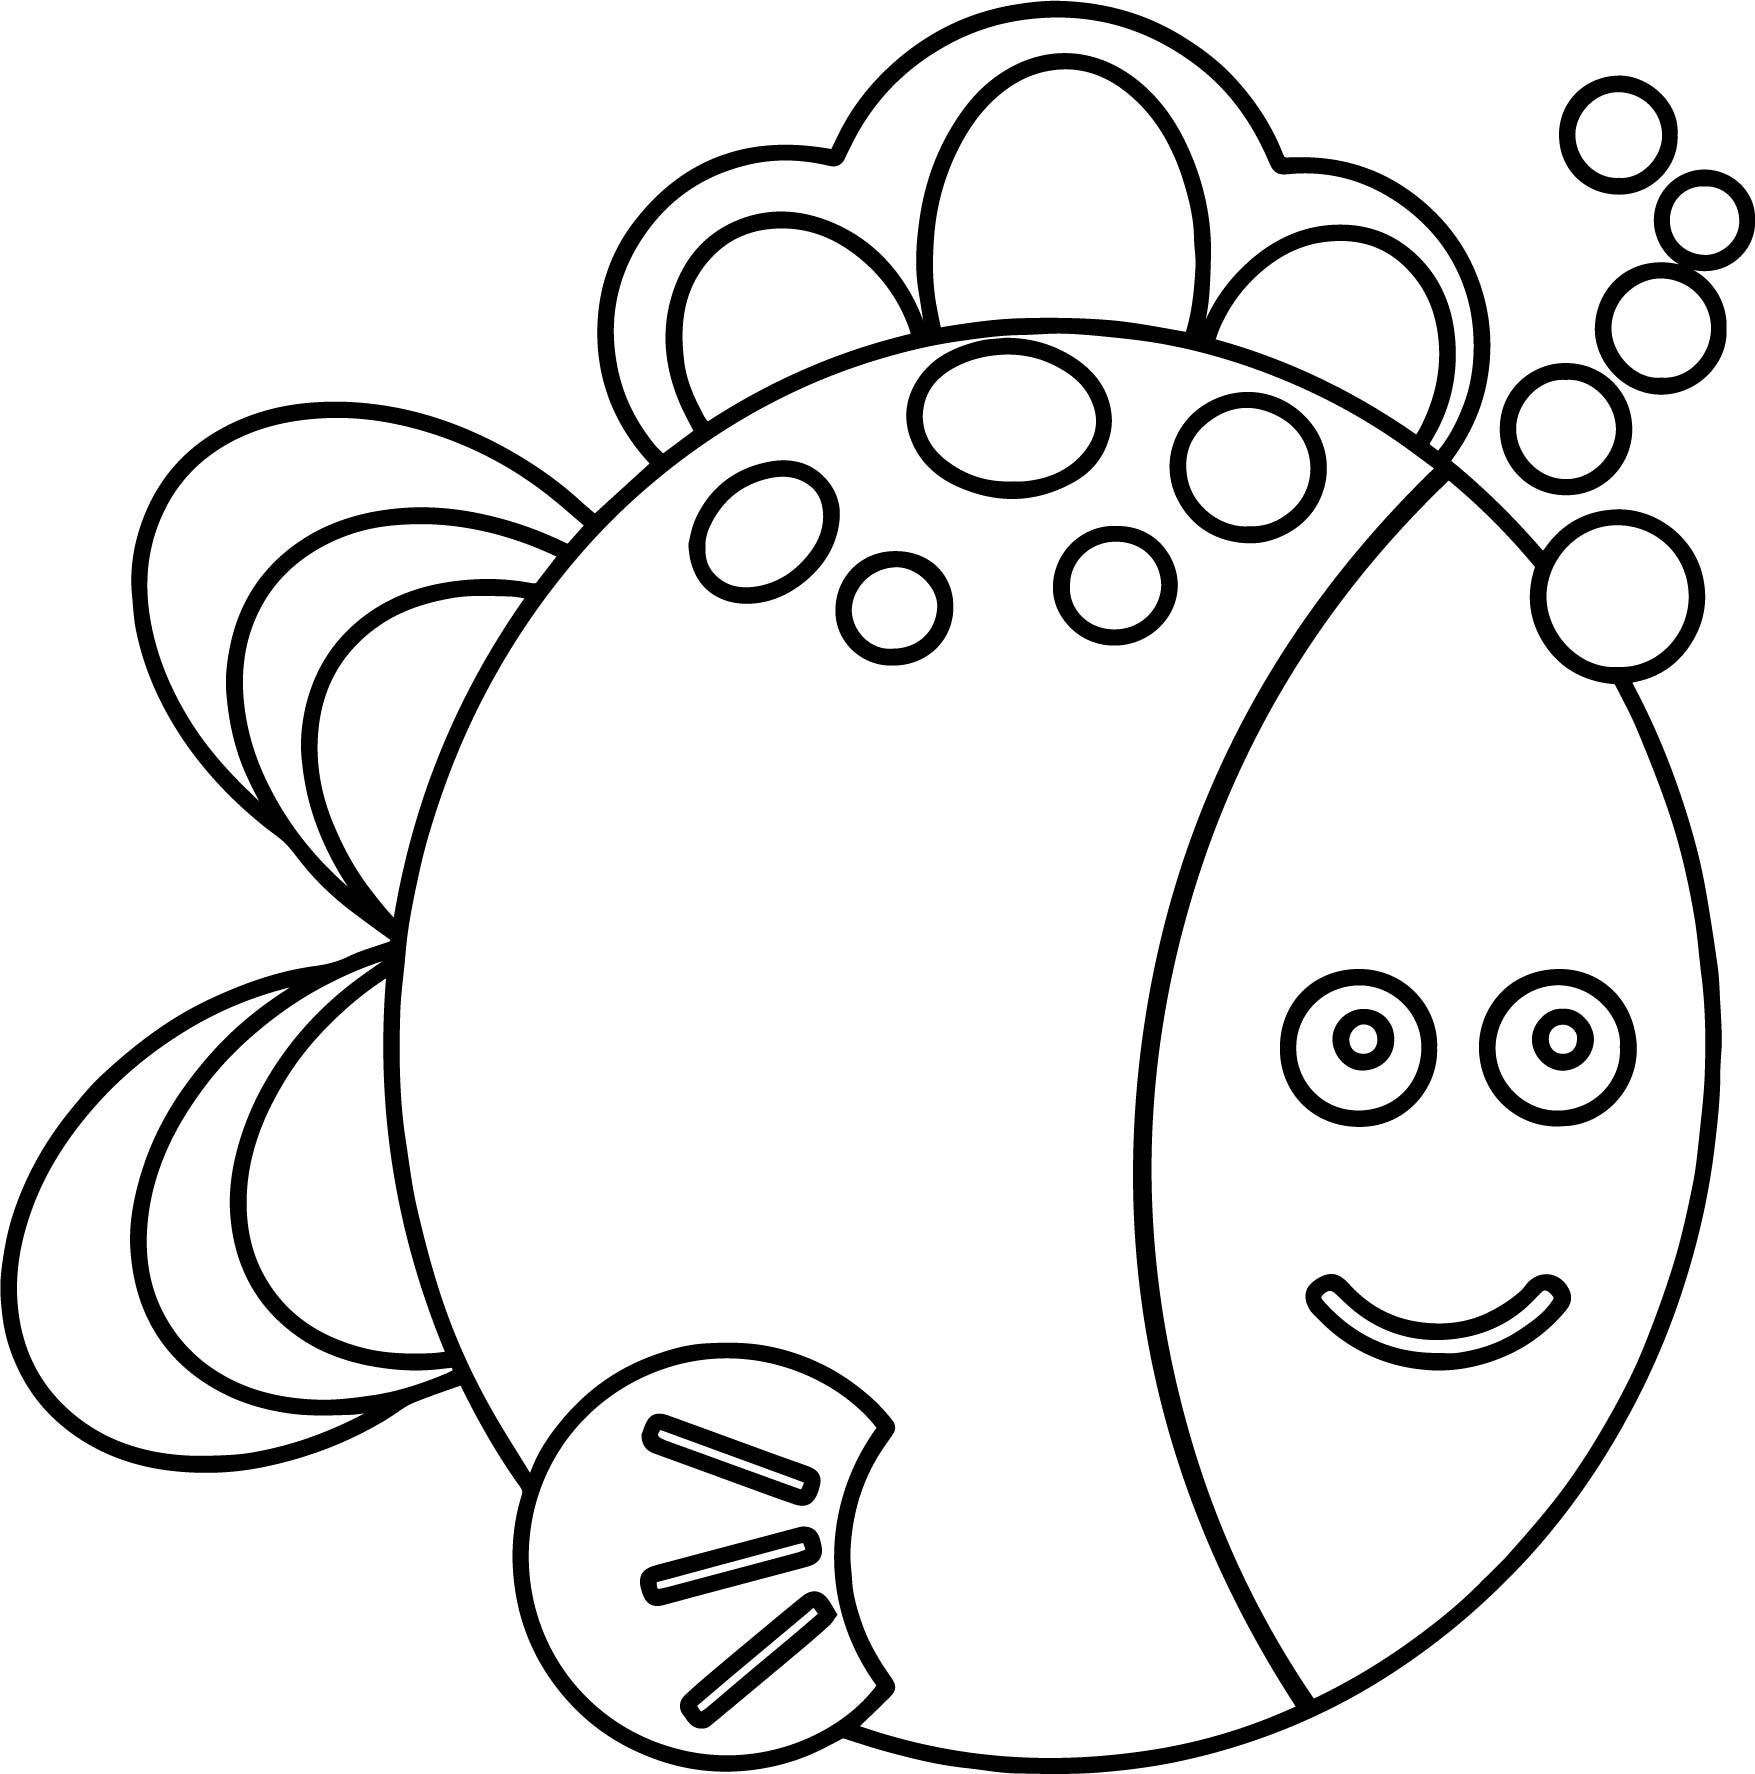 Preschool Fish Coloring Page